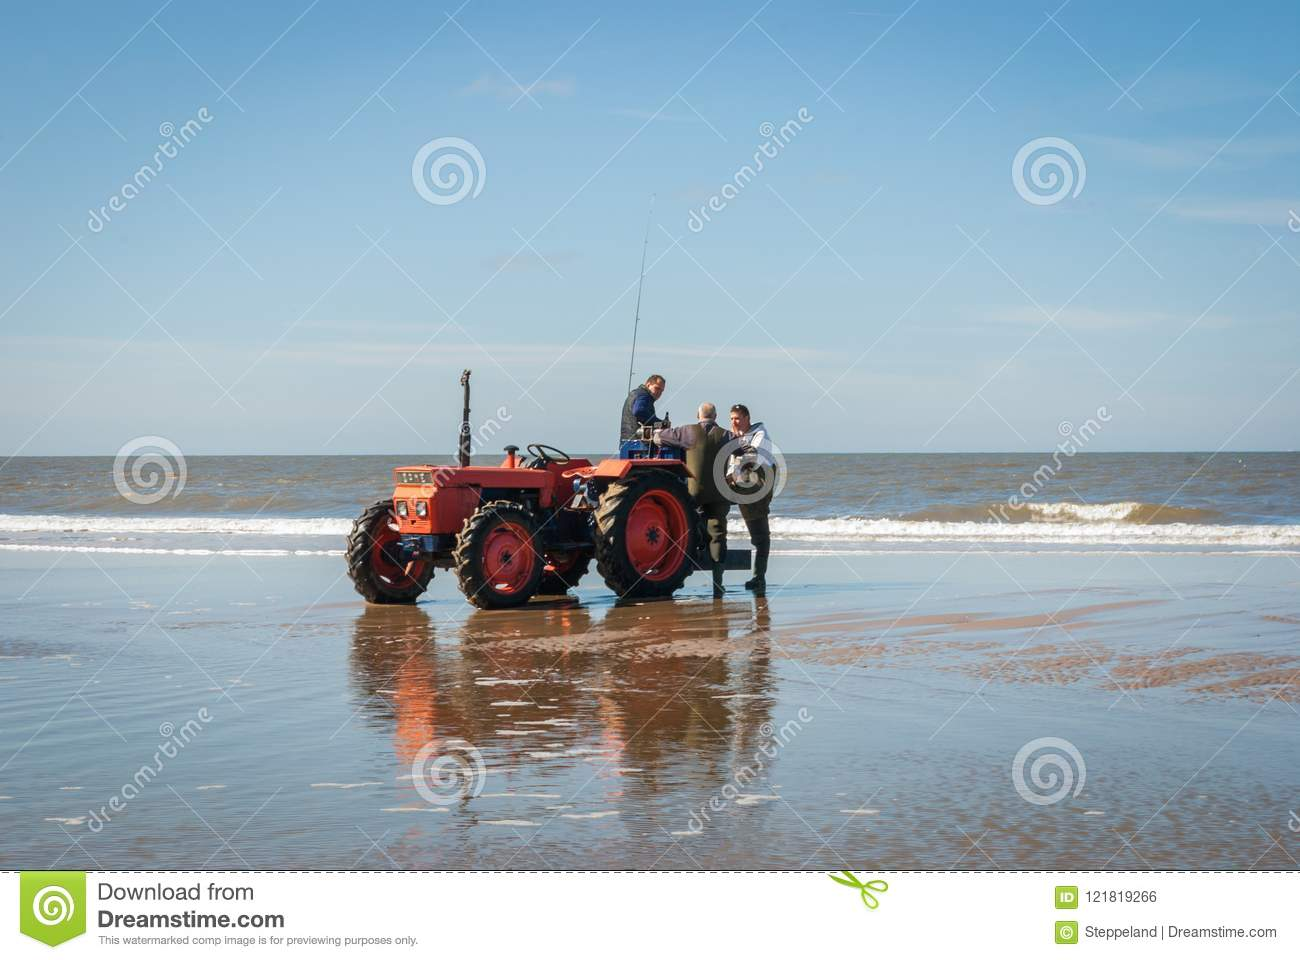 Egmond-aan-Zee, Netherlands - 2016-04-10: 3 men of the organisation with a red tractor on the beach